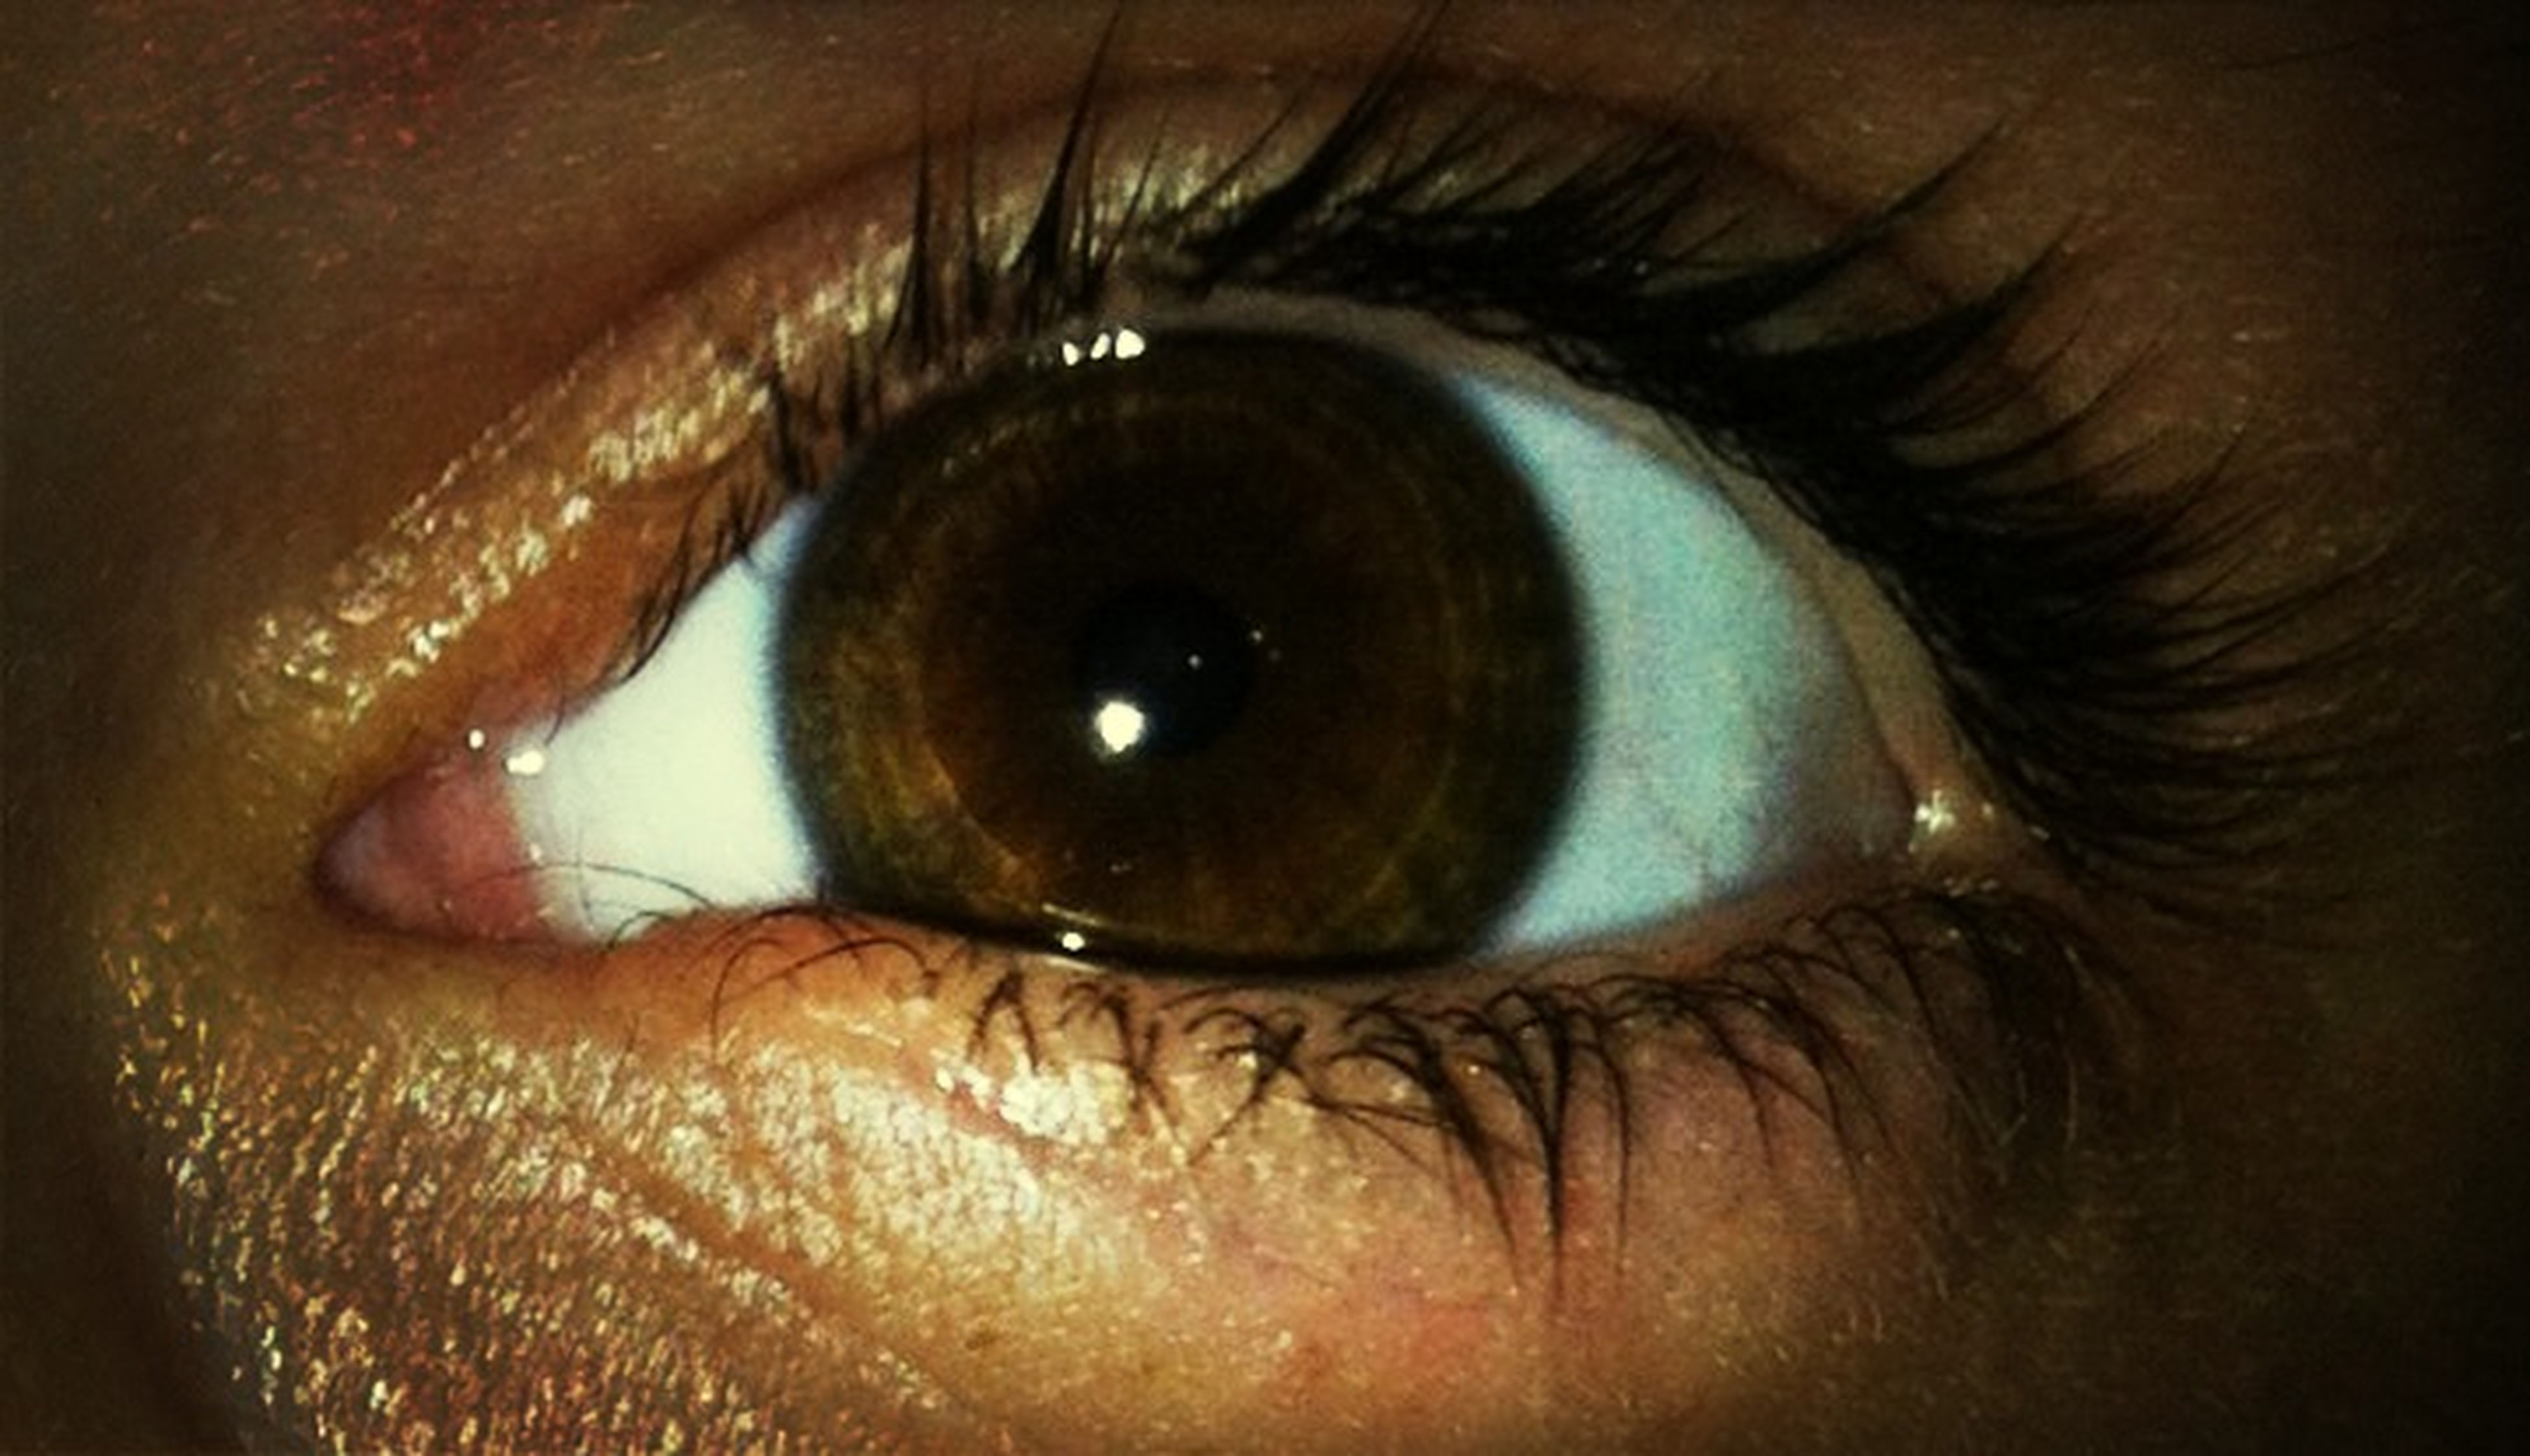 human eye, close-up, part of, eyelash, eyesight, sensory perception, human skin, person, unrecognizable person, iris - eye, lifestyles, cropped, extreme close-up, eyeball, full frame, indoors